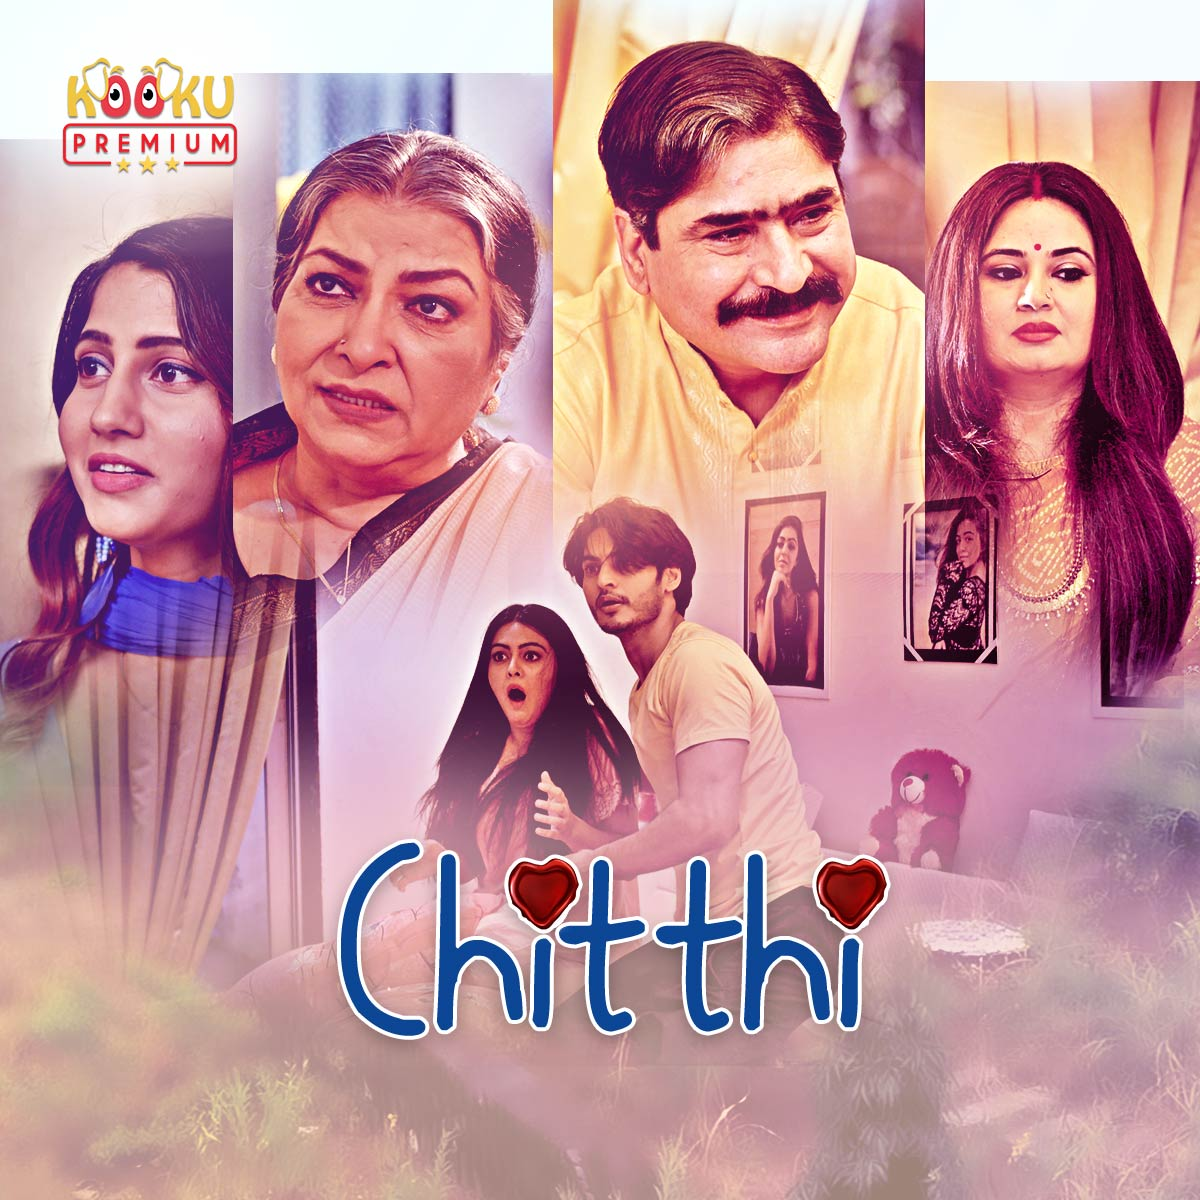 Chitthi 2020 S01 Hindi Kooku App Web Series Official Trailer 1080p HDRip 45MB Download